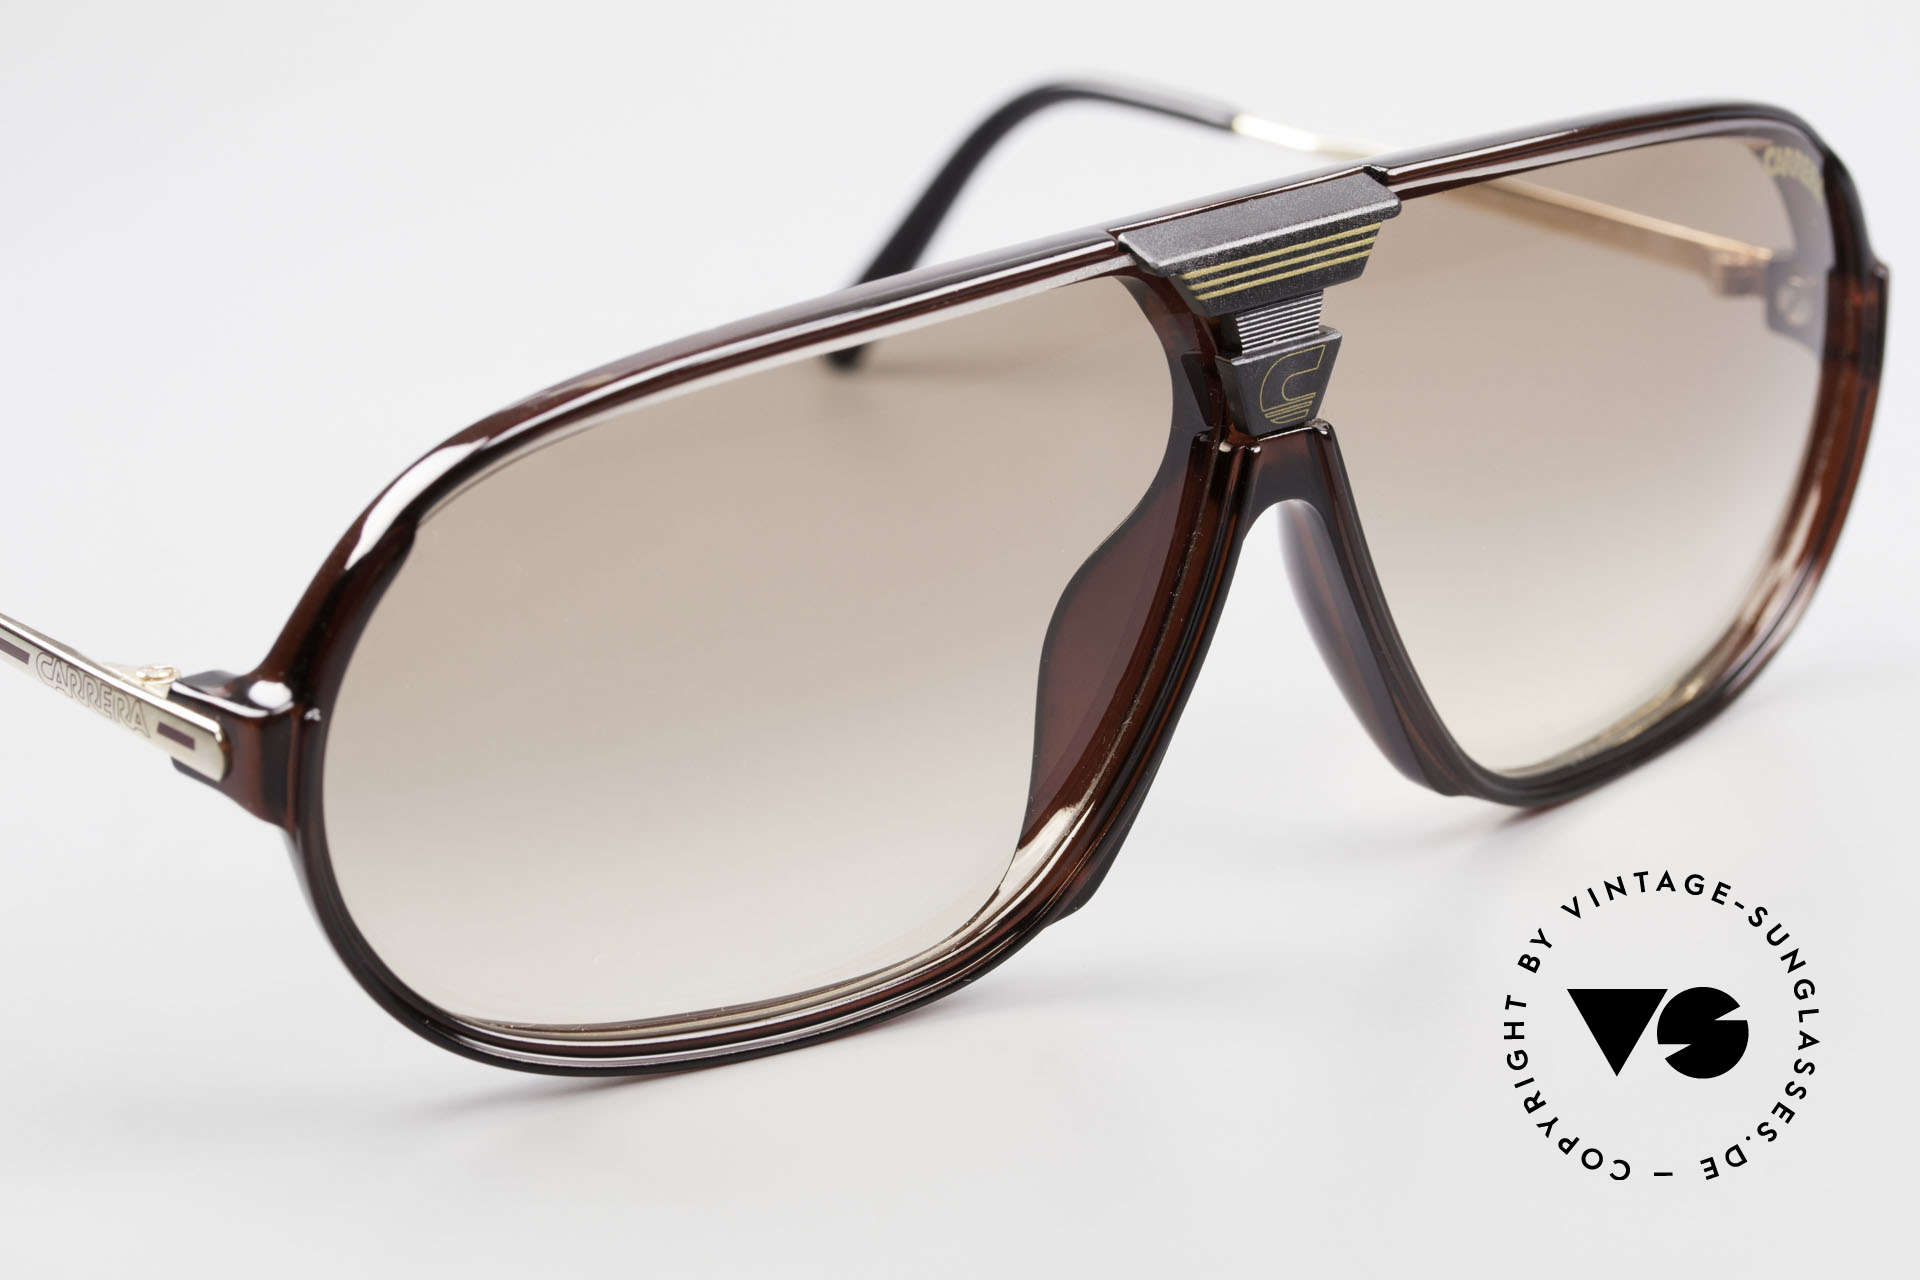 Carrera 5416 80's Interchangeable Lenses, a symbiosis of sport and fashionable lifestyle!, Made for Men